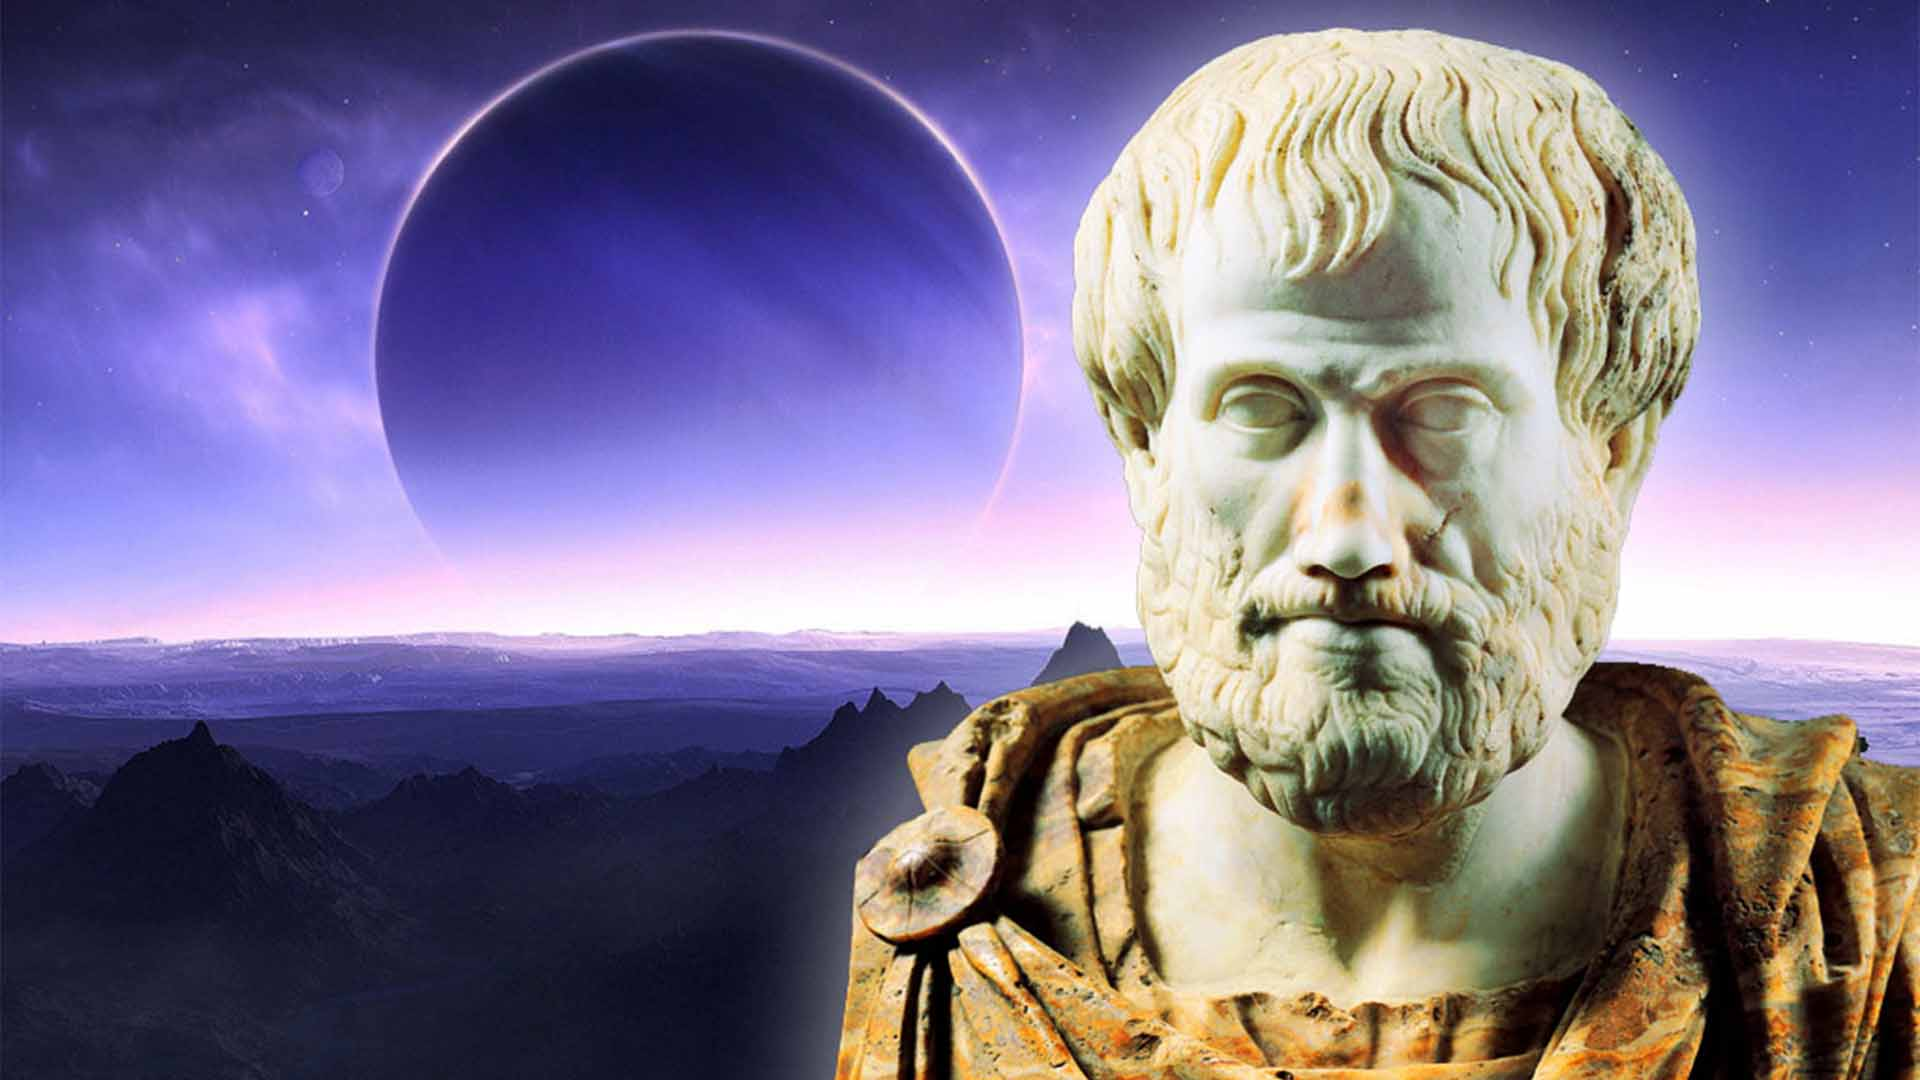 aristotle-inventor-laws